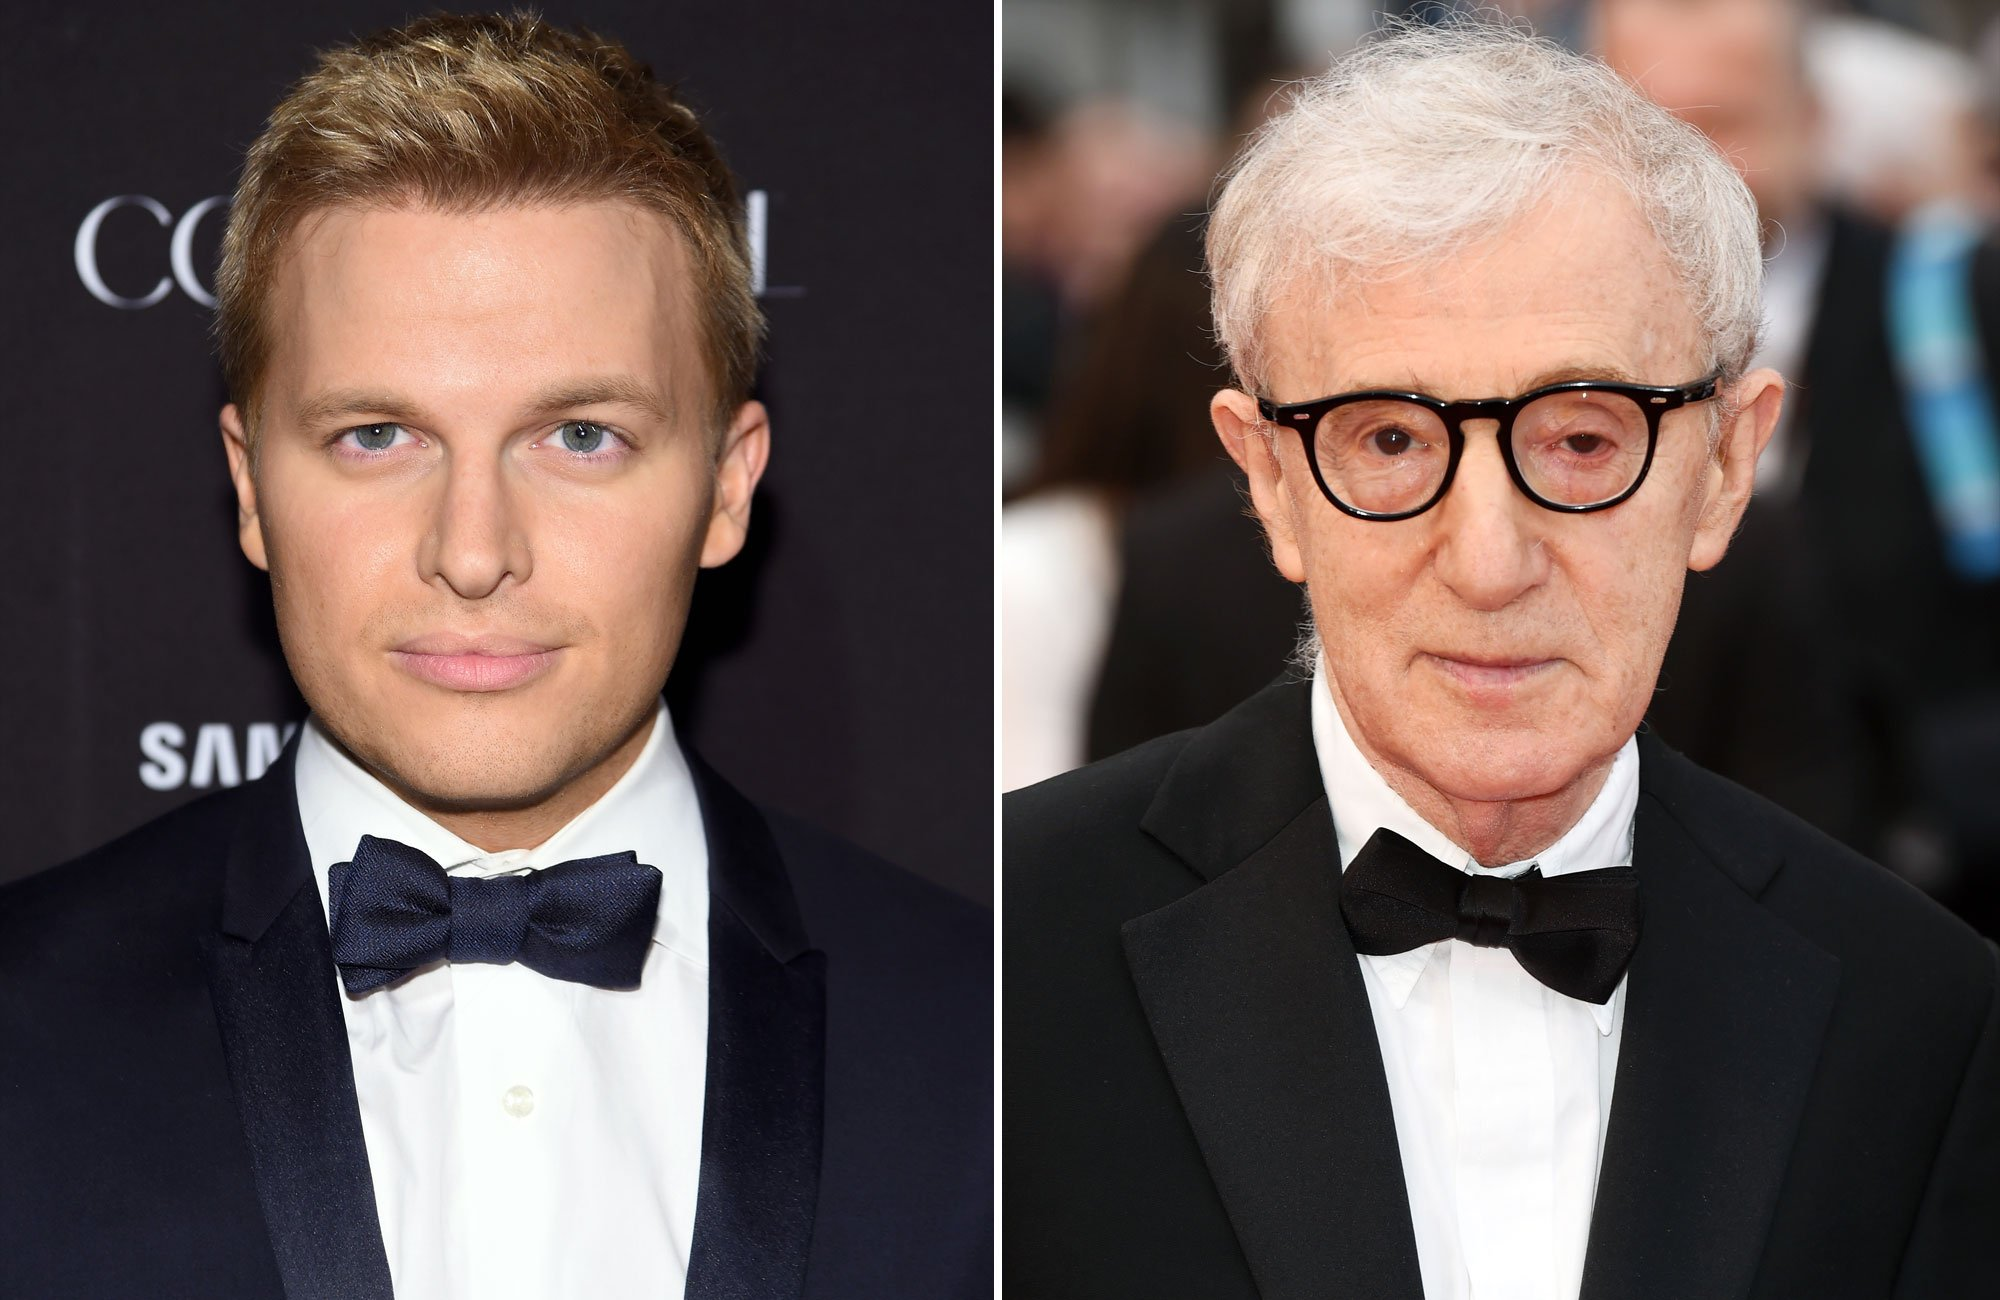 Woody Allen's son Ronan Farrow says 'family background' helped him understand 'abuse of power'